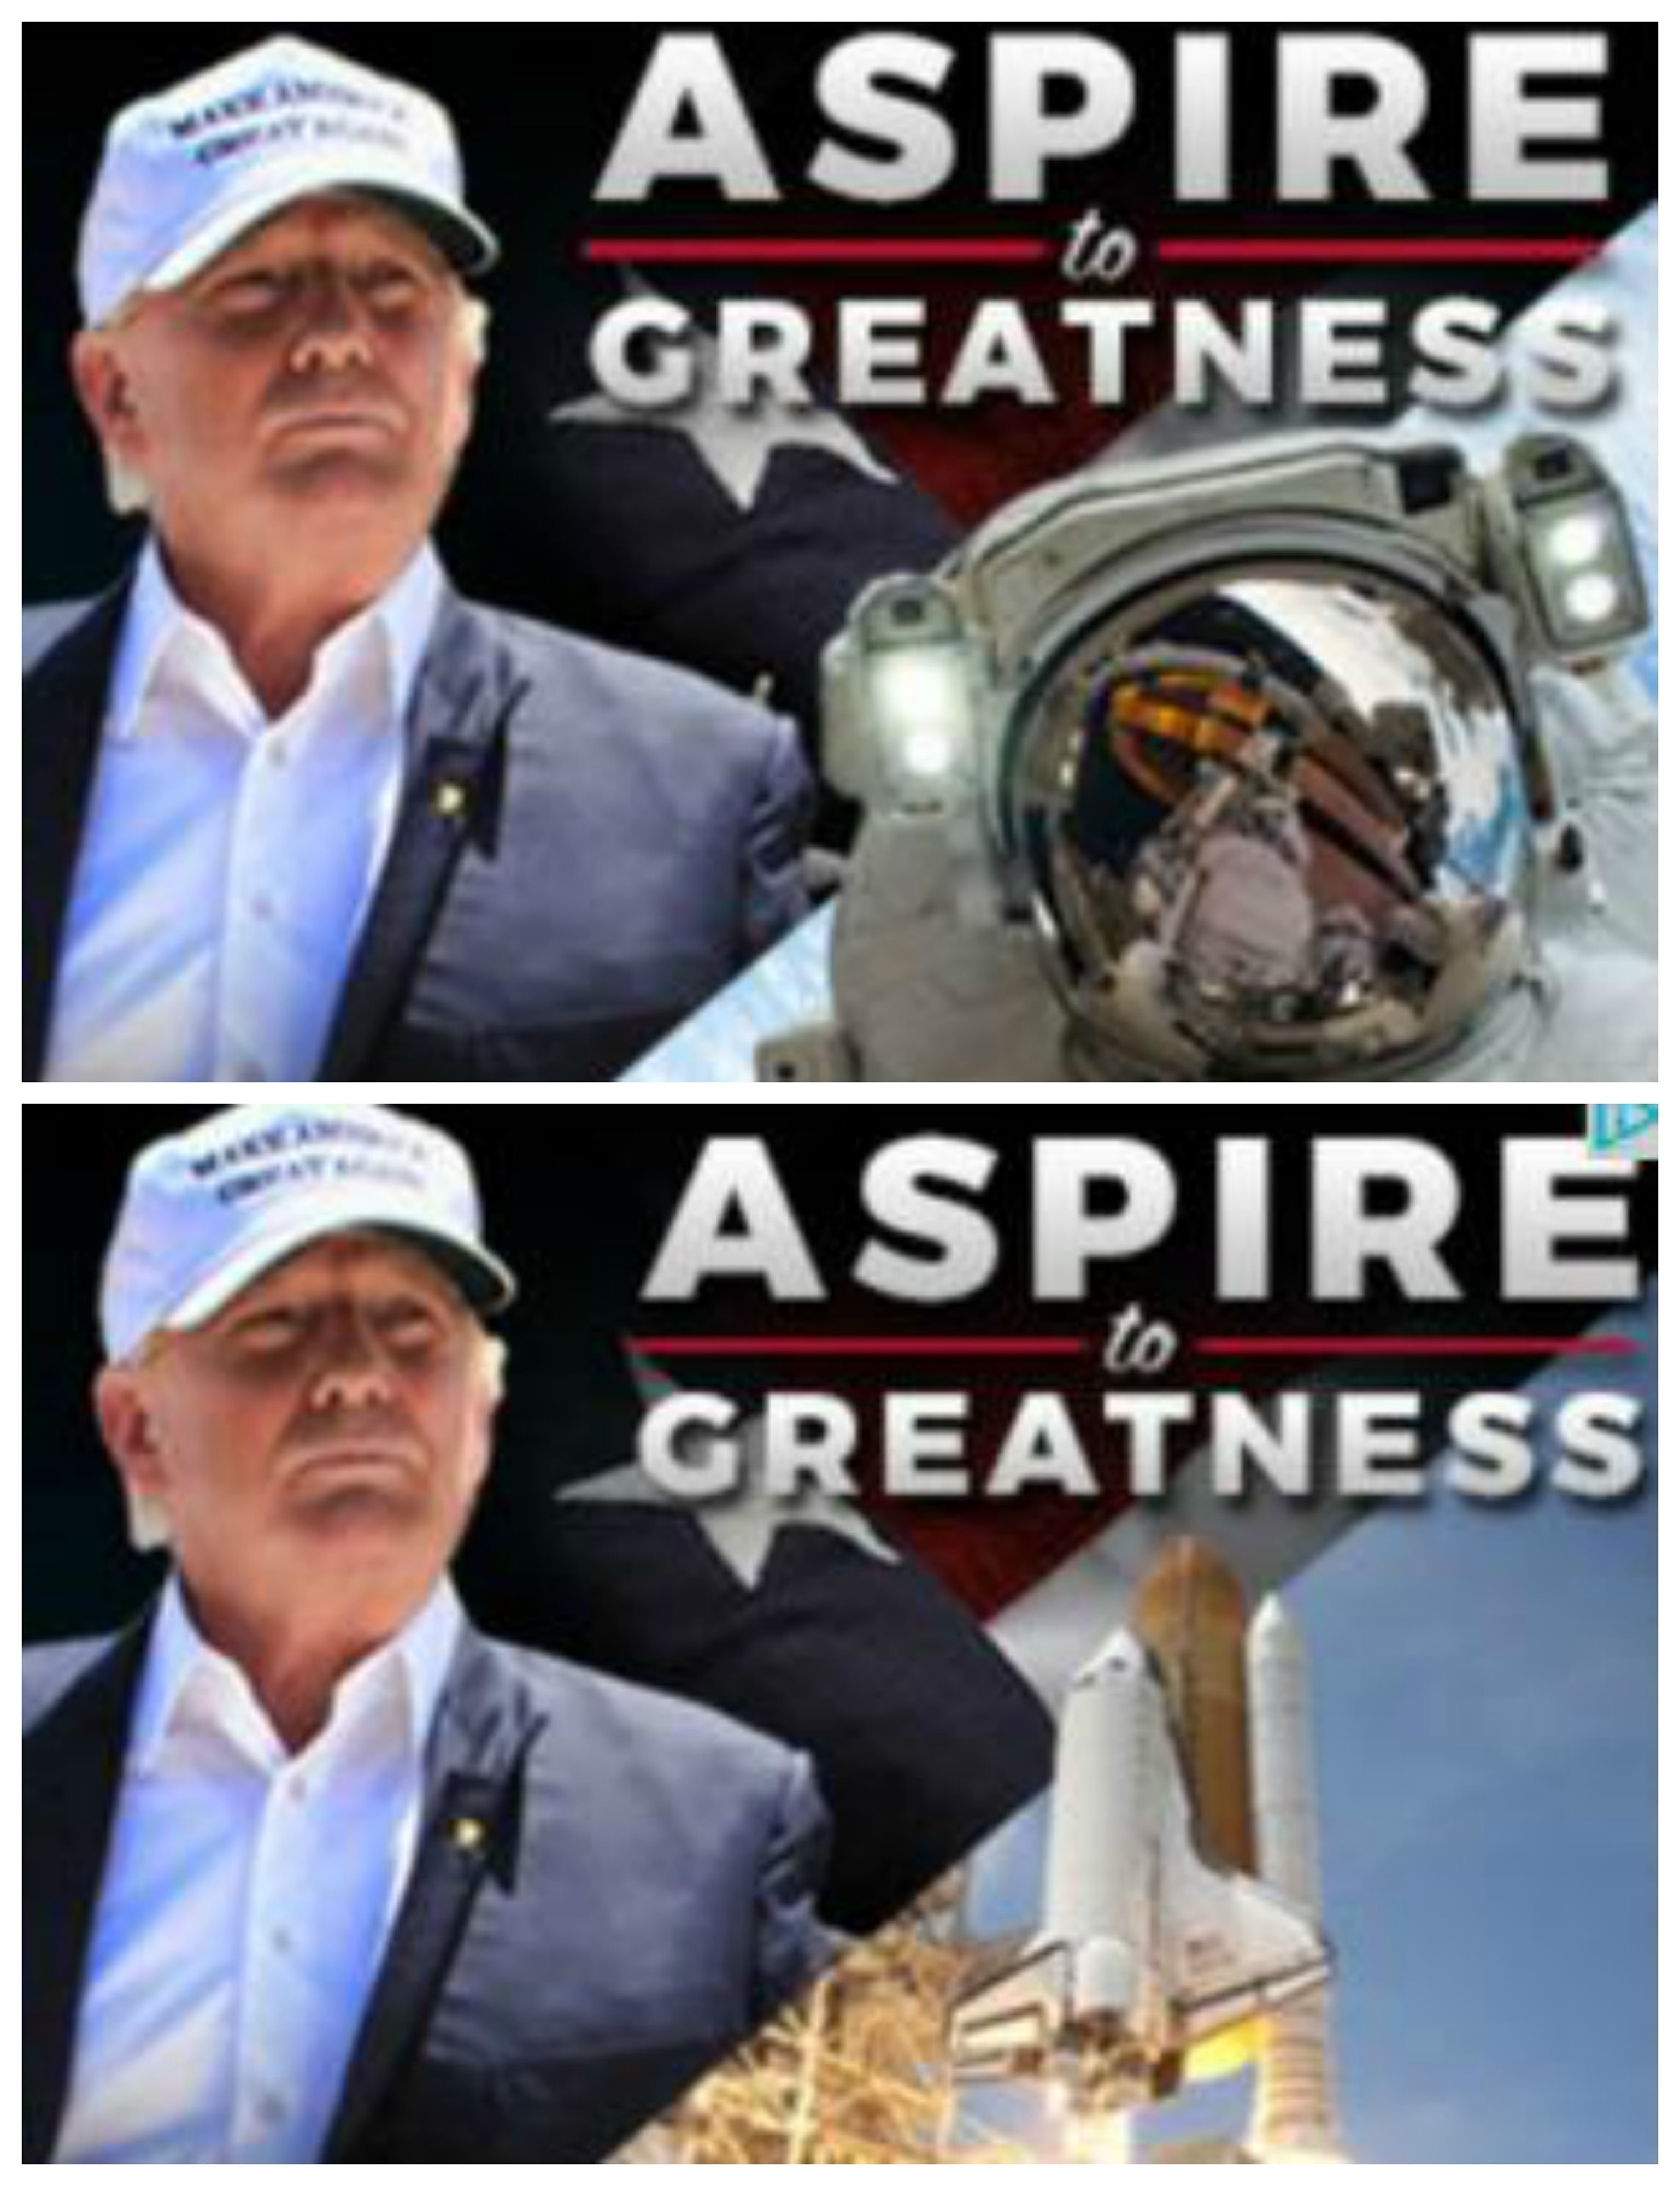 Trump's two NASA-related campaign ads.